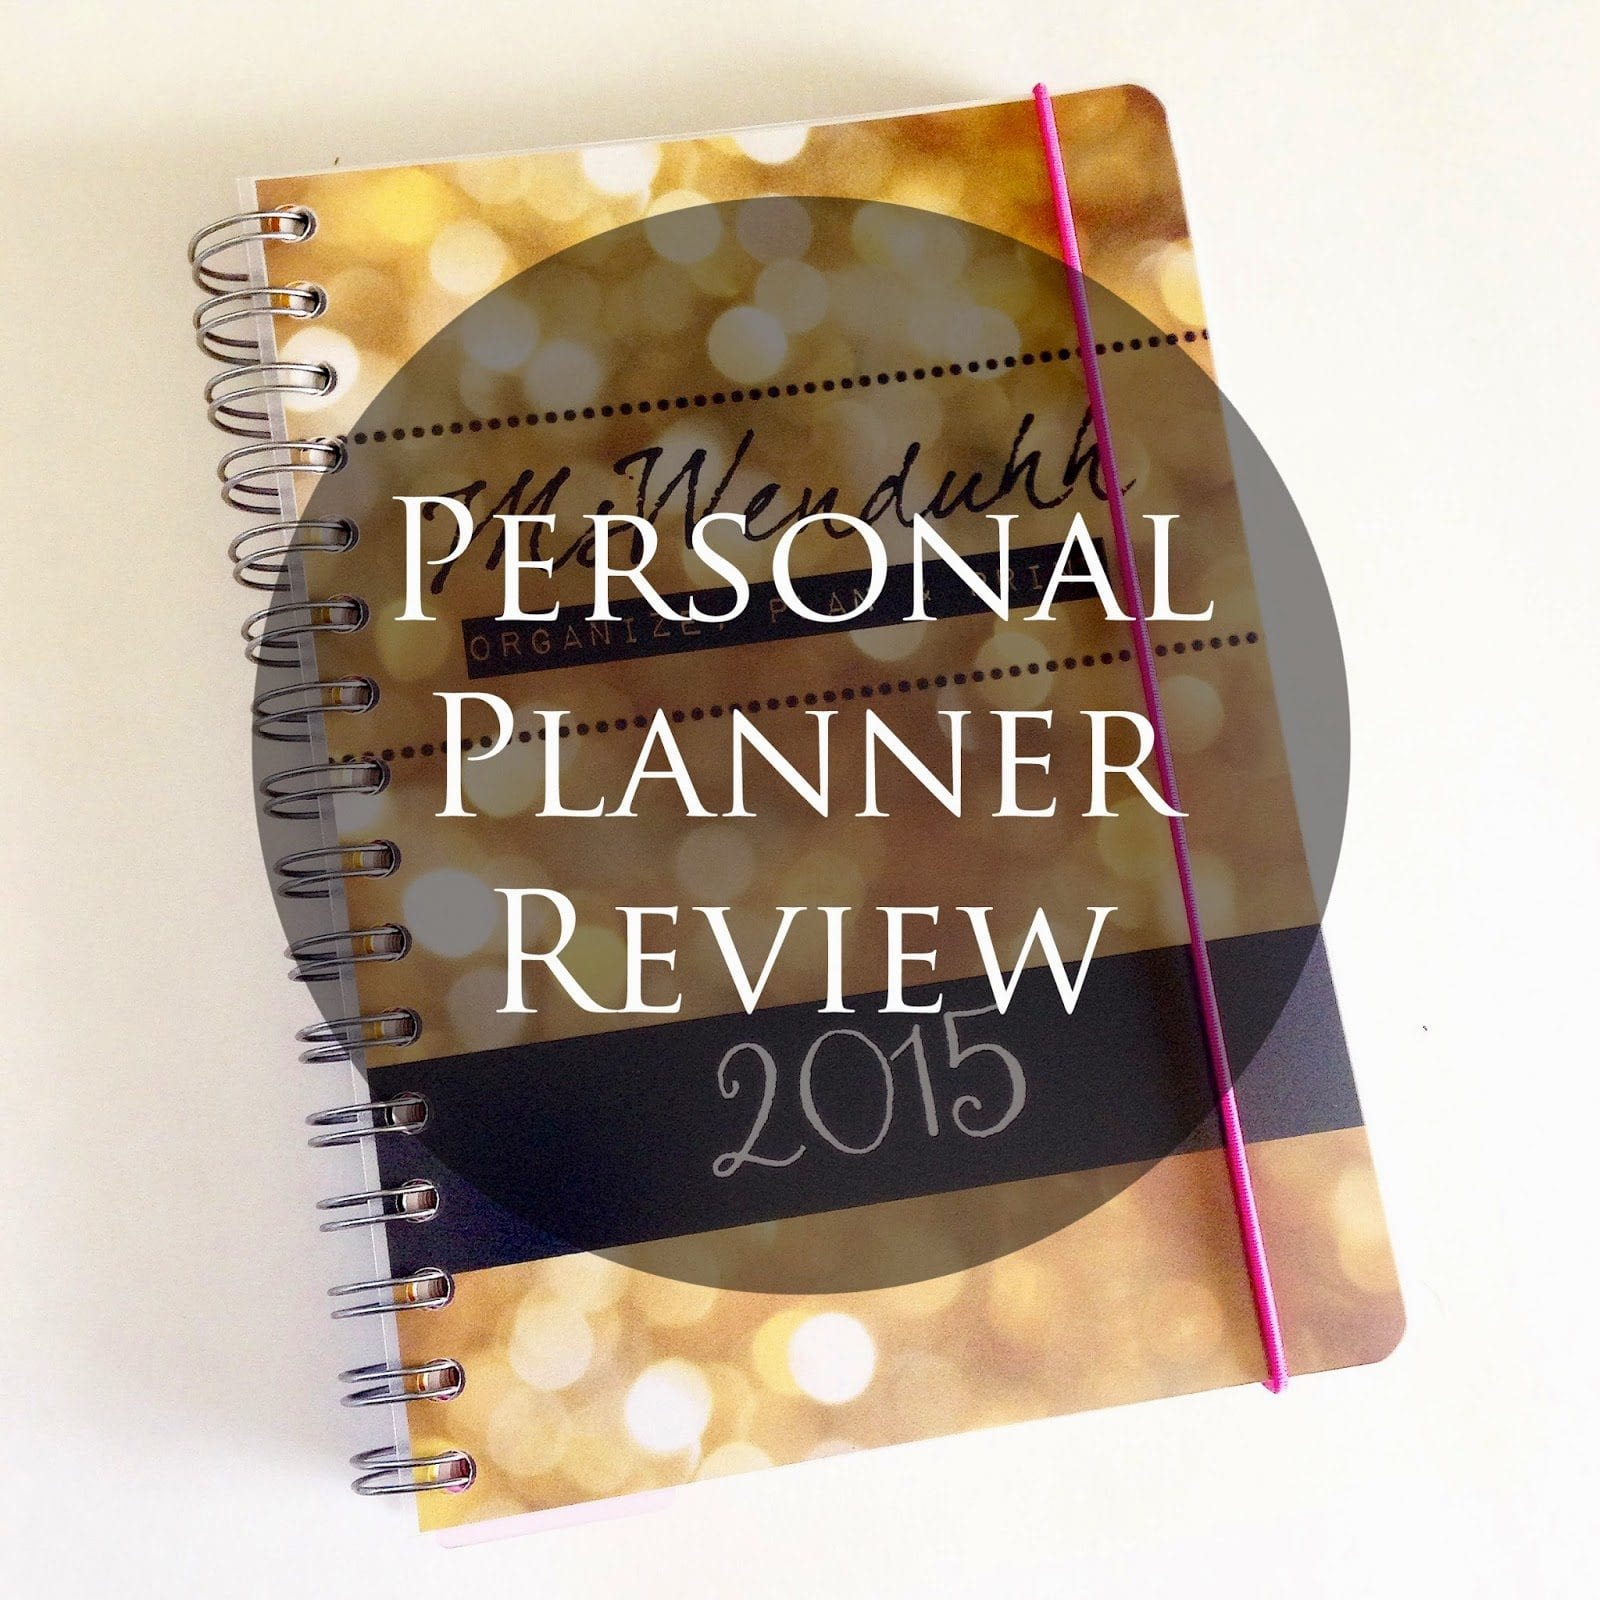 Personal Planner Review Design Your Own Planner Inside